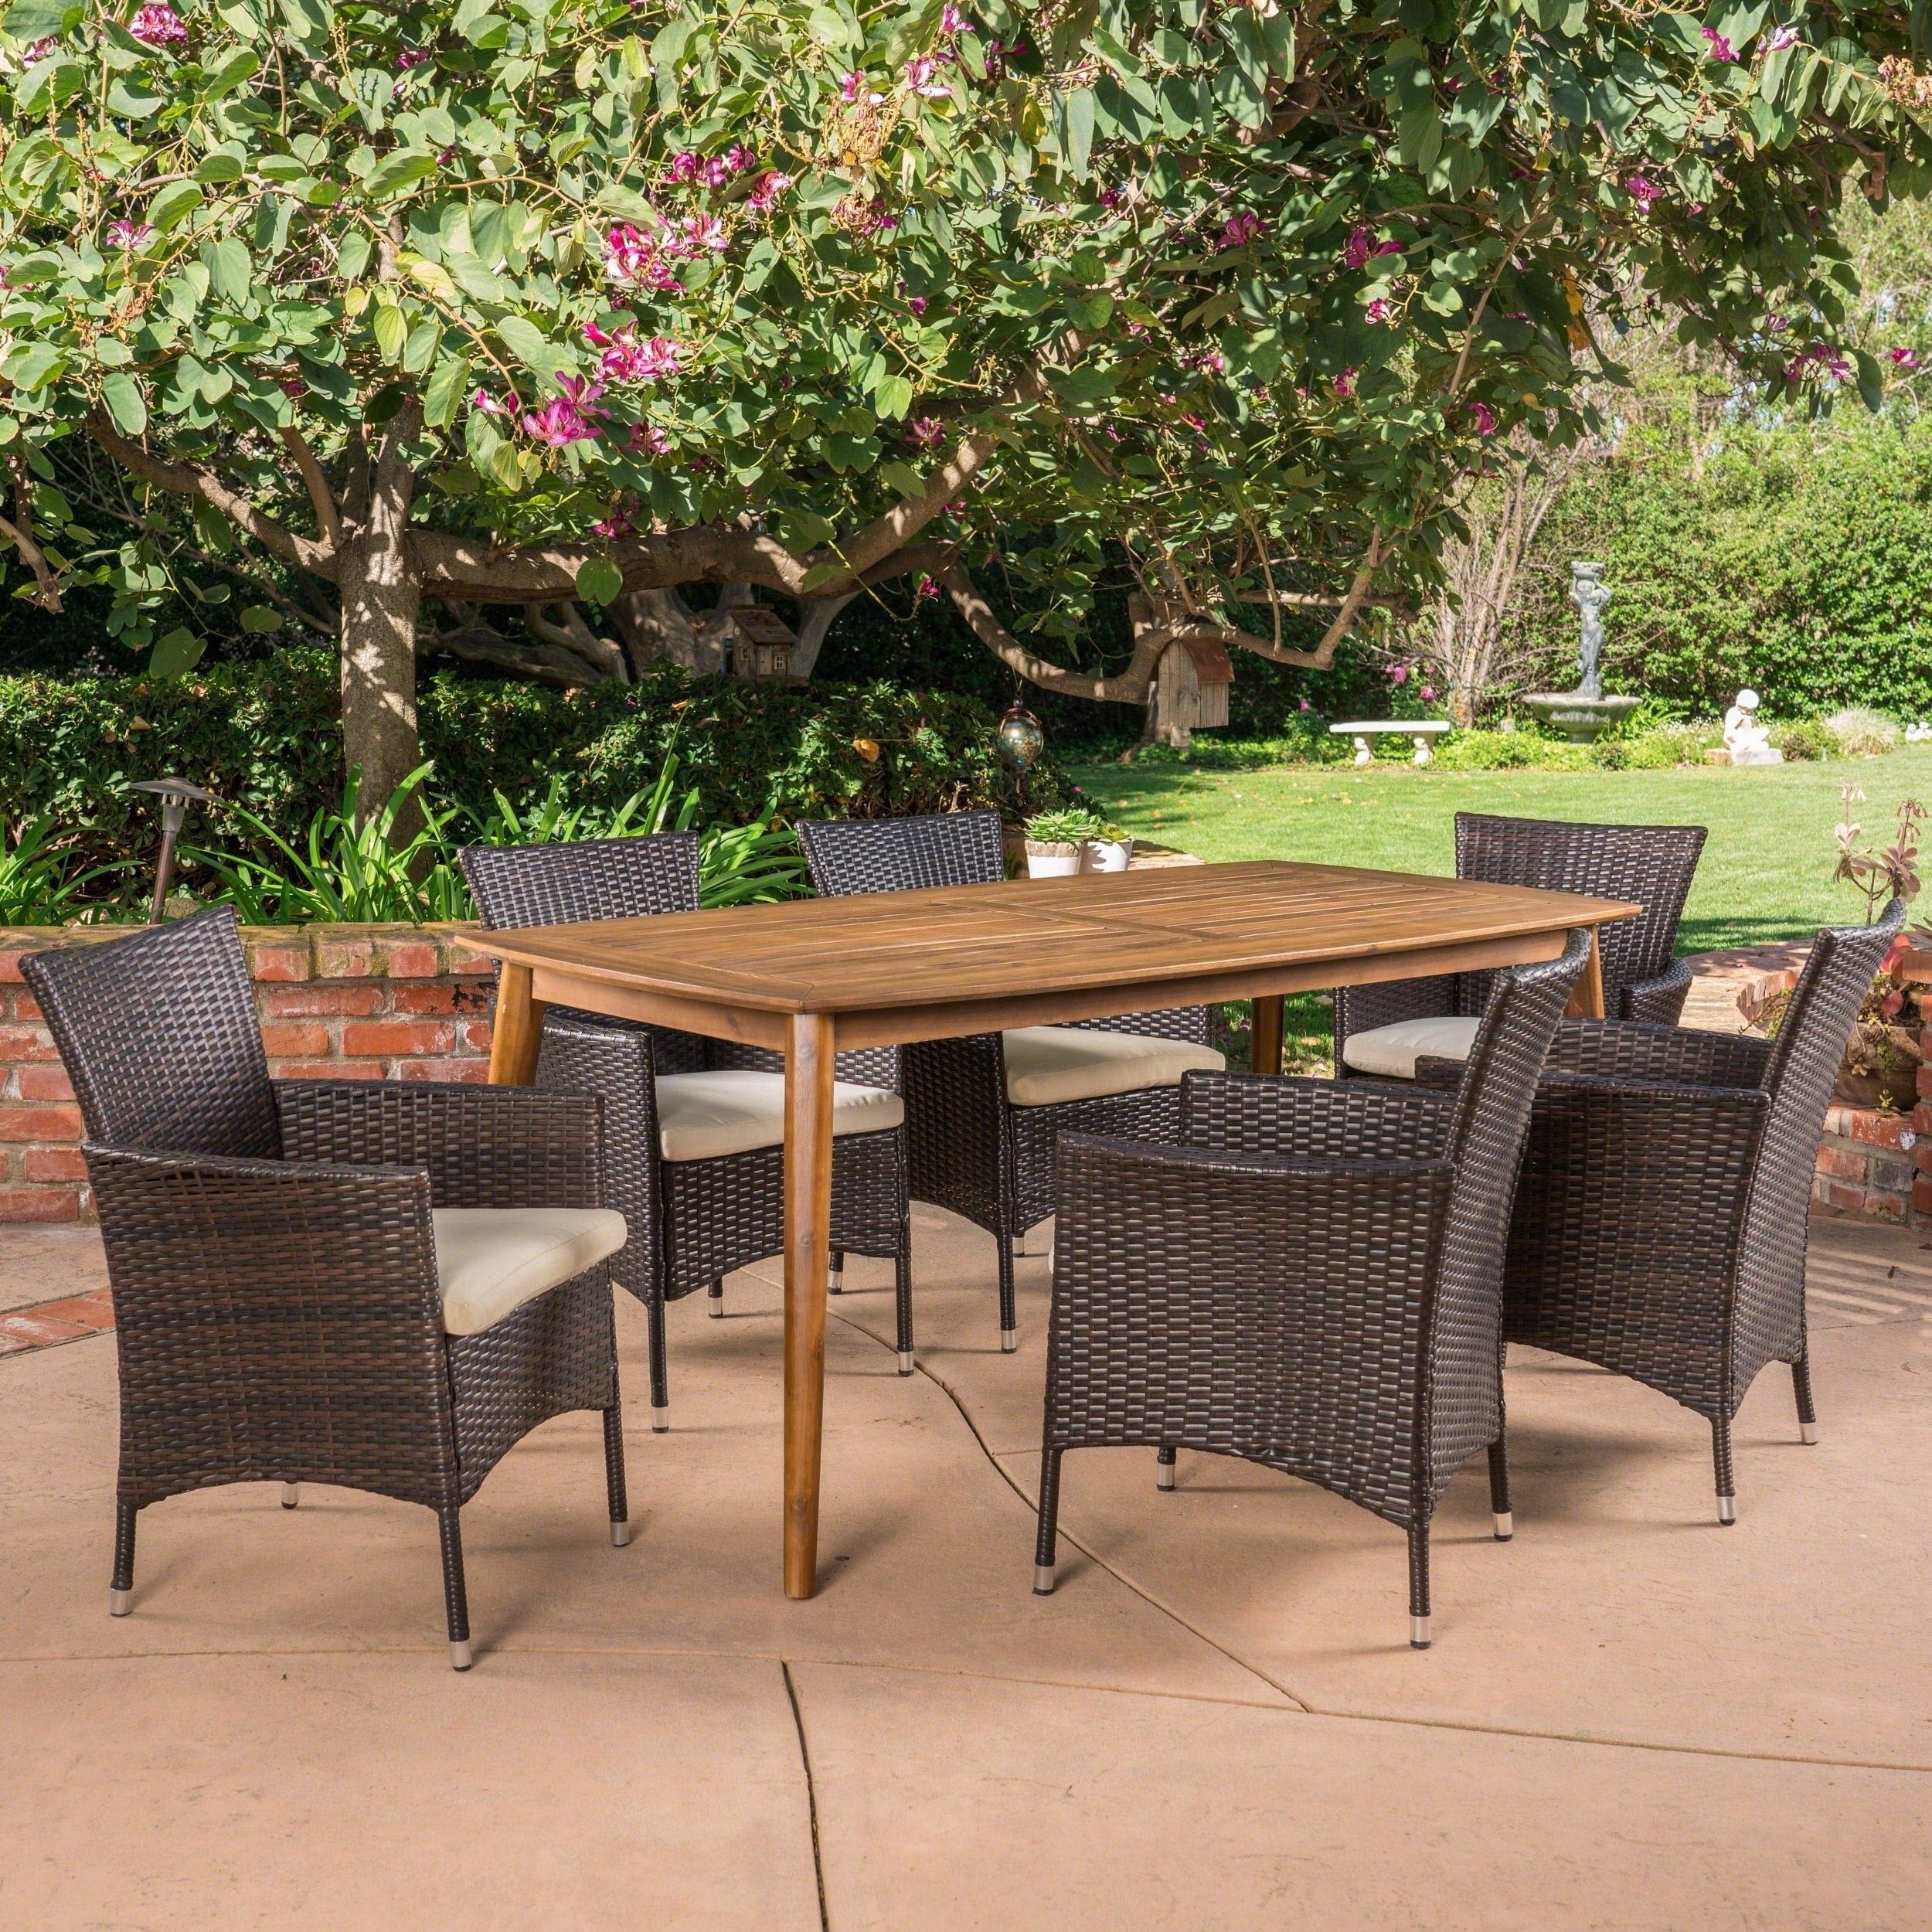 Shop Jaxon Outdoor 7 Piece Multibrown Pe Wicker Dining Set With With Regard To Recent Jaxon Grey Rectangle Extension Dining Tables (Image 19 of 20)